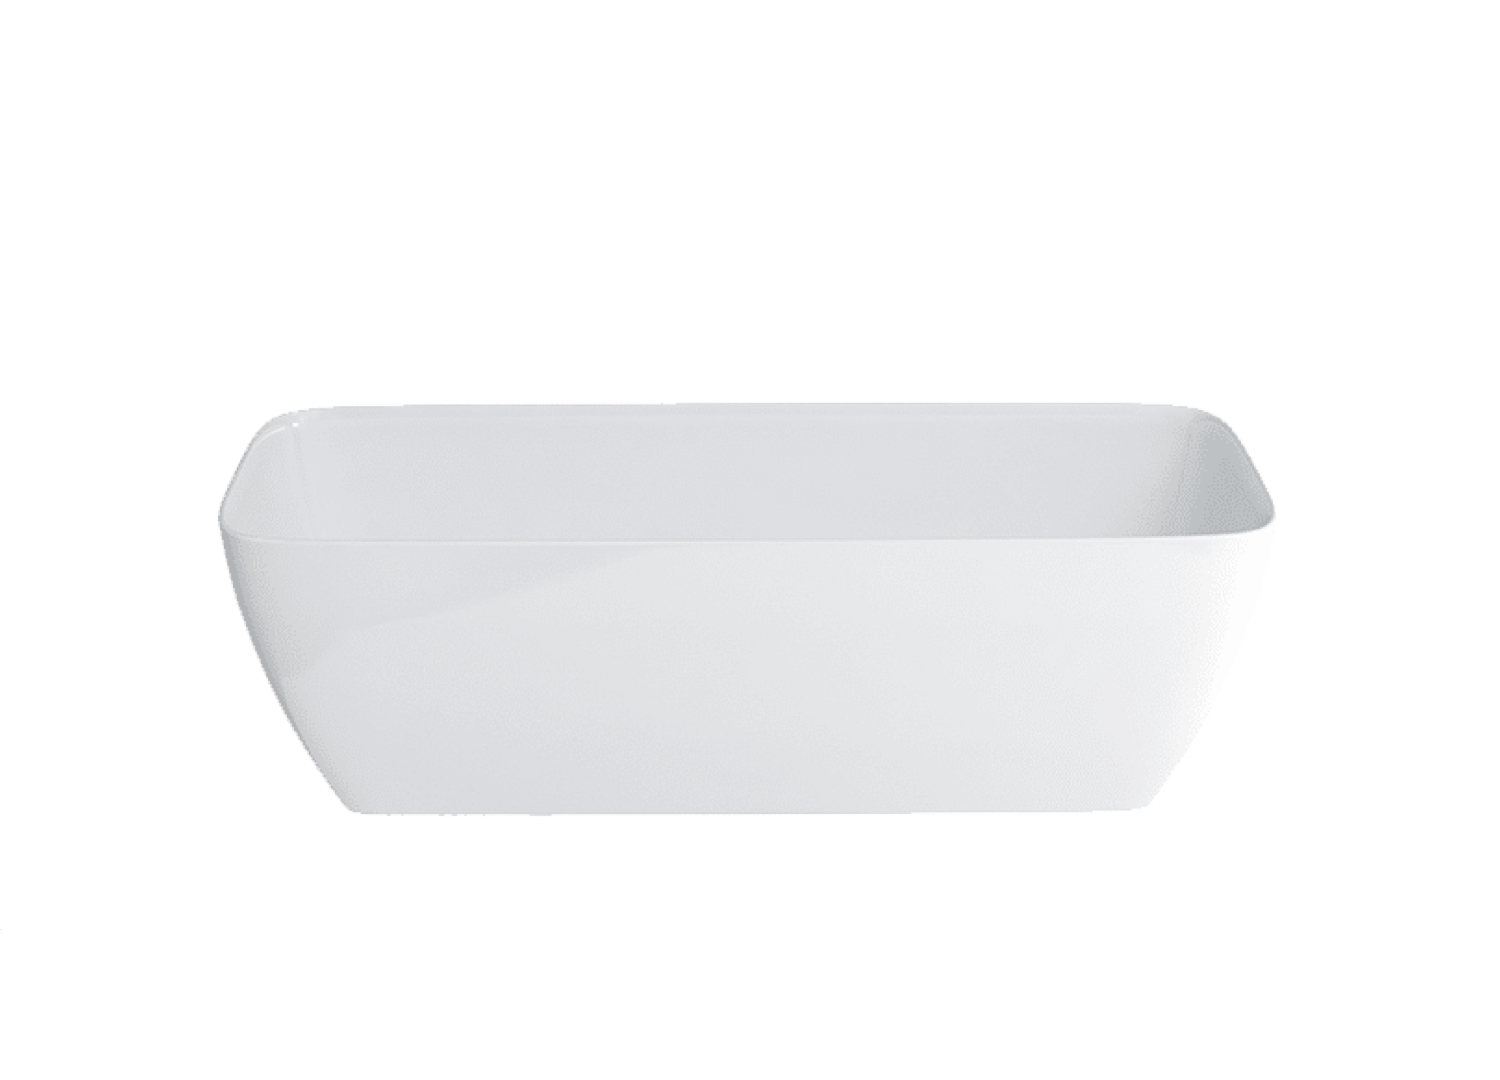 est living abey canal grande 1800 clearstone bath product library 01